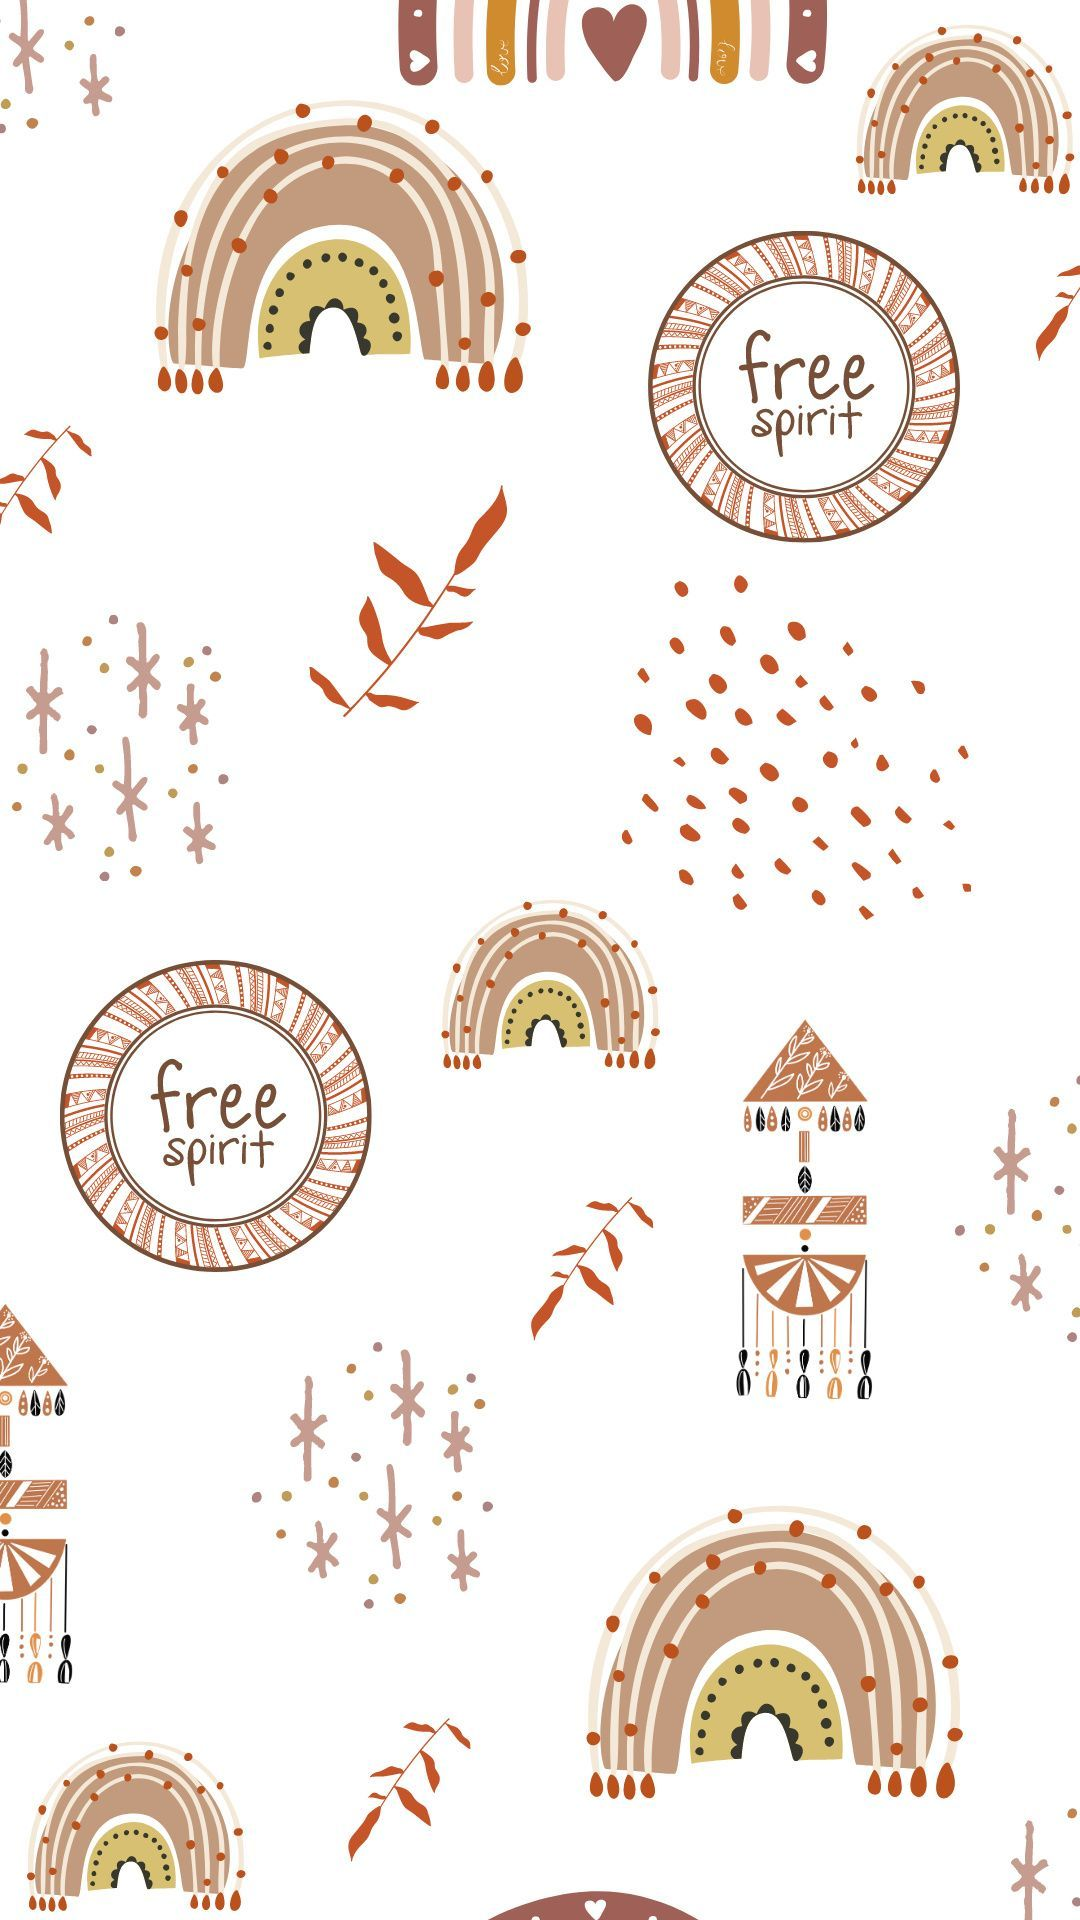 Jul 20, 2021· find exterior house wall decorations. Free Aesthetic iPhone Backgrounds, Widgets, Templates ...